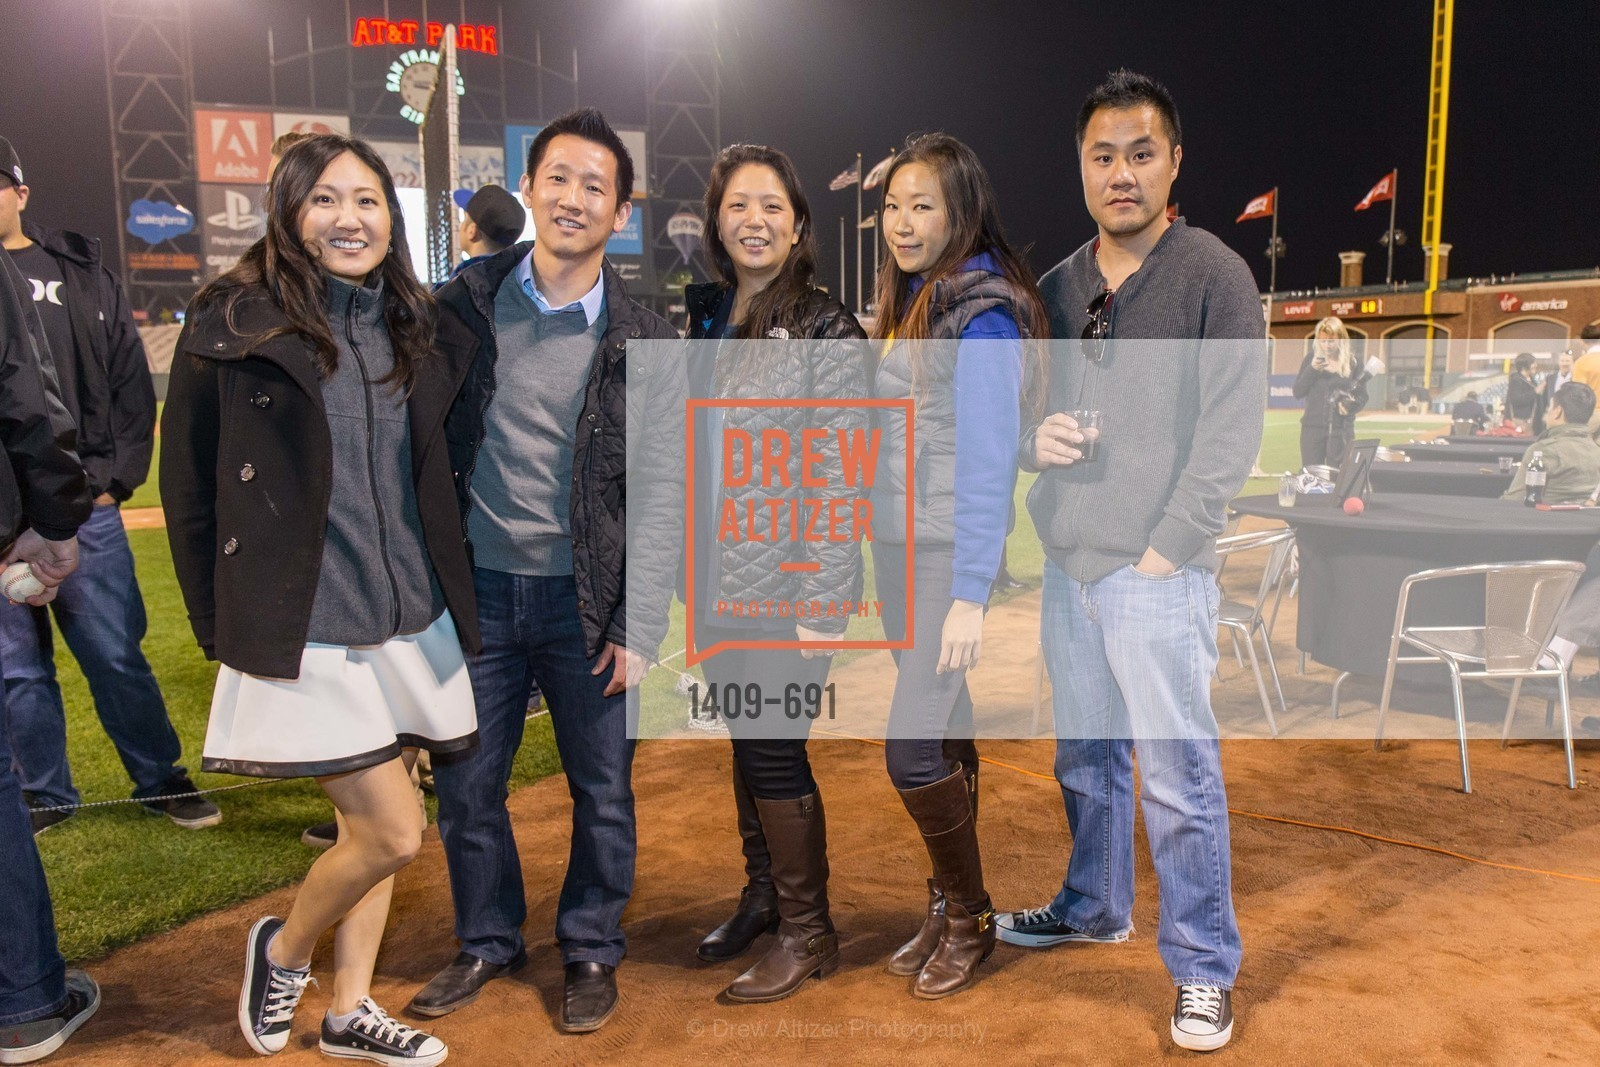 Joyce Han, Wilson Yu, Wendy Chen, Kayan Tse, ST. FRANCIS FOUNDATION'S Knock It Out of the Park, US. AT&T Park, June 4th, 2015,Drew Altizer, Drew Altizer Photography, full-service agency, private events, San Francisco photographer, photographer california